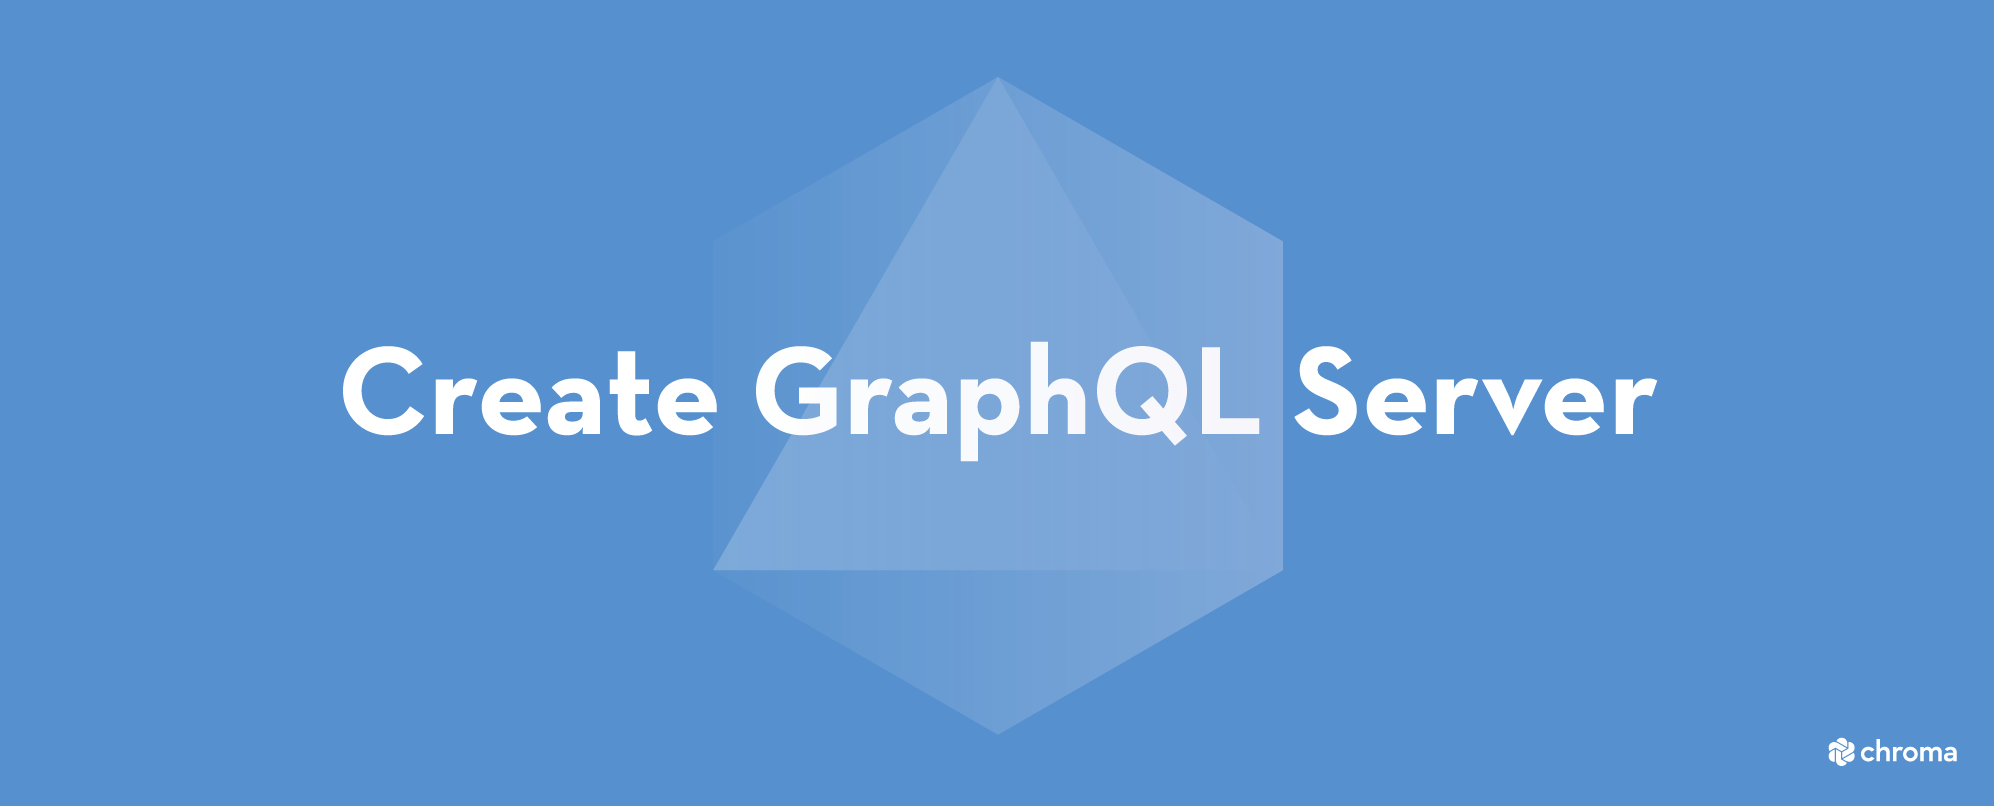 Graphql - Magazine cover